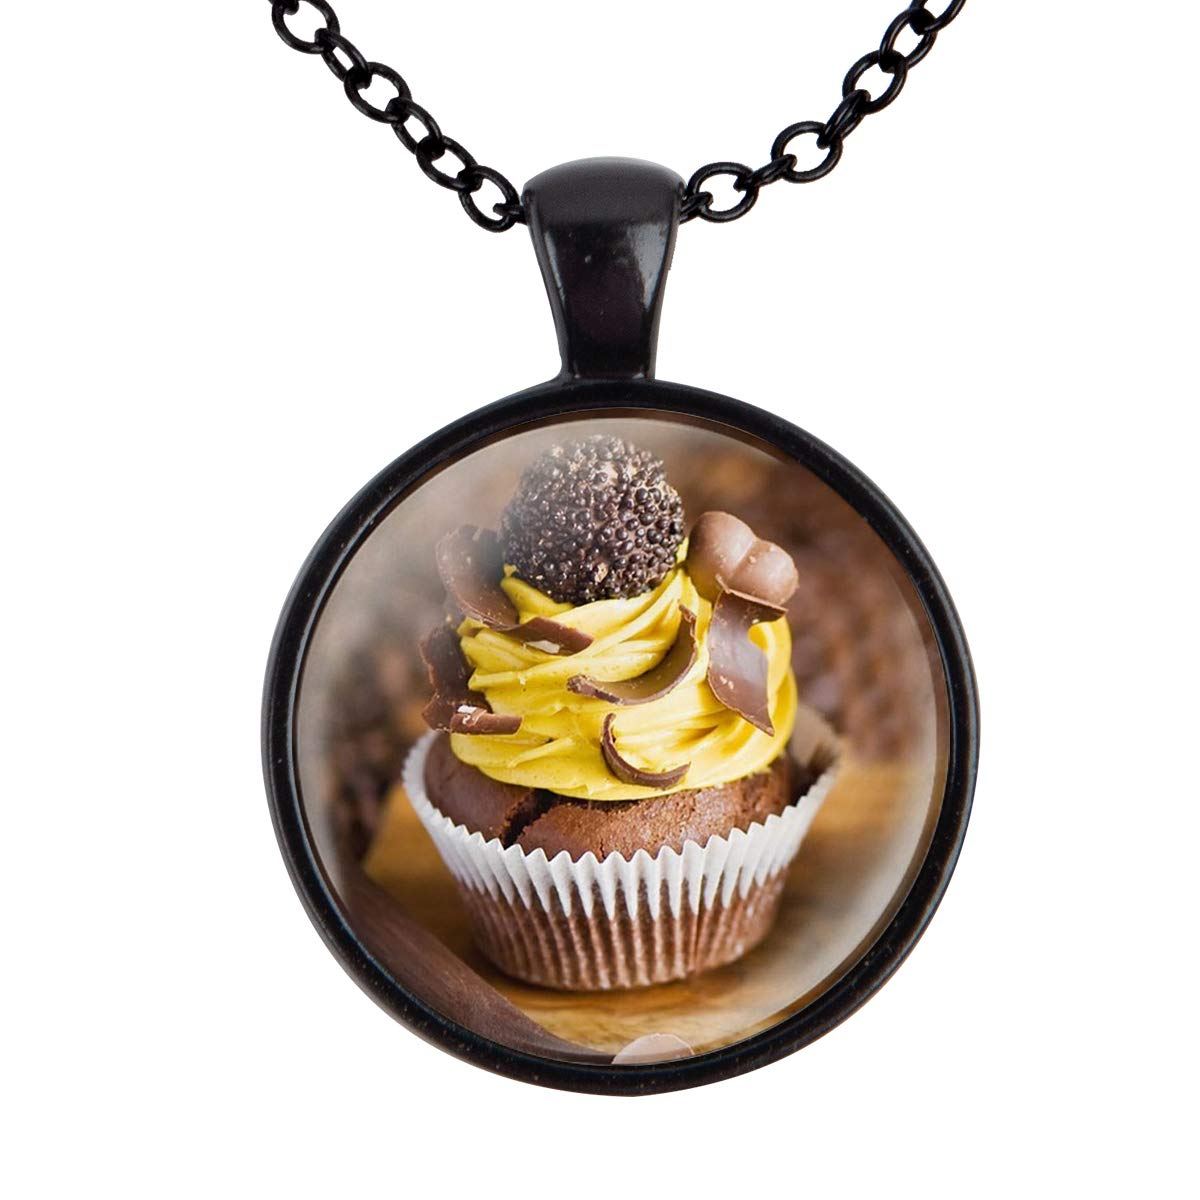 Lightrain Chocolate Cupcake Photo Pendant Necklace Vintage Bronze Chain Statement Necklace Handmade Jewelry Gifts